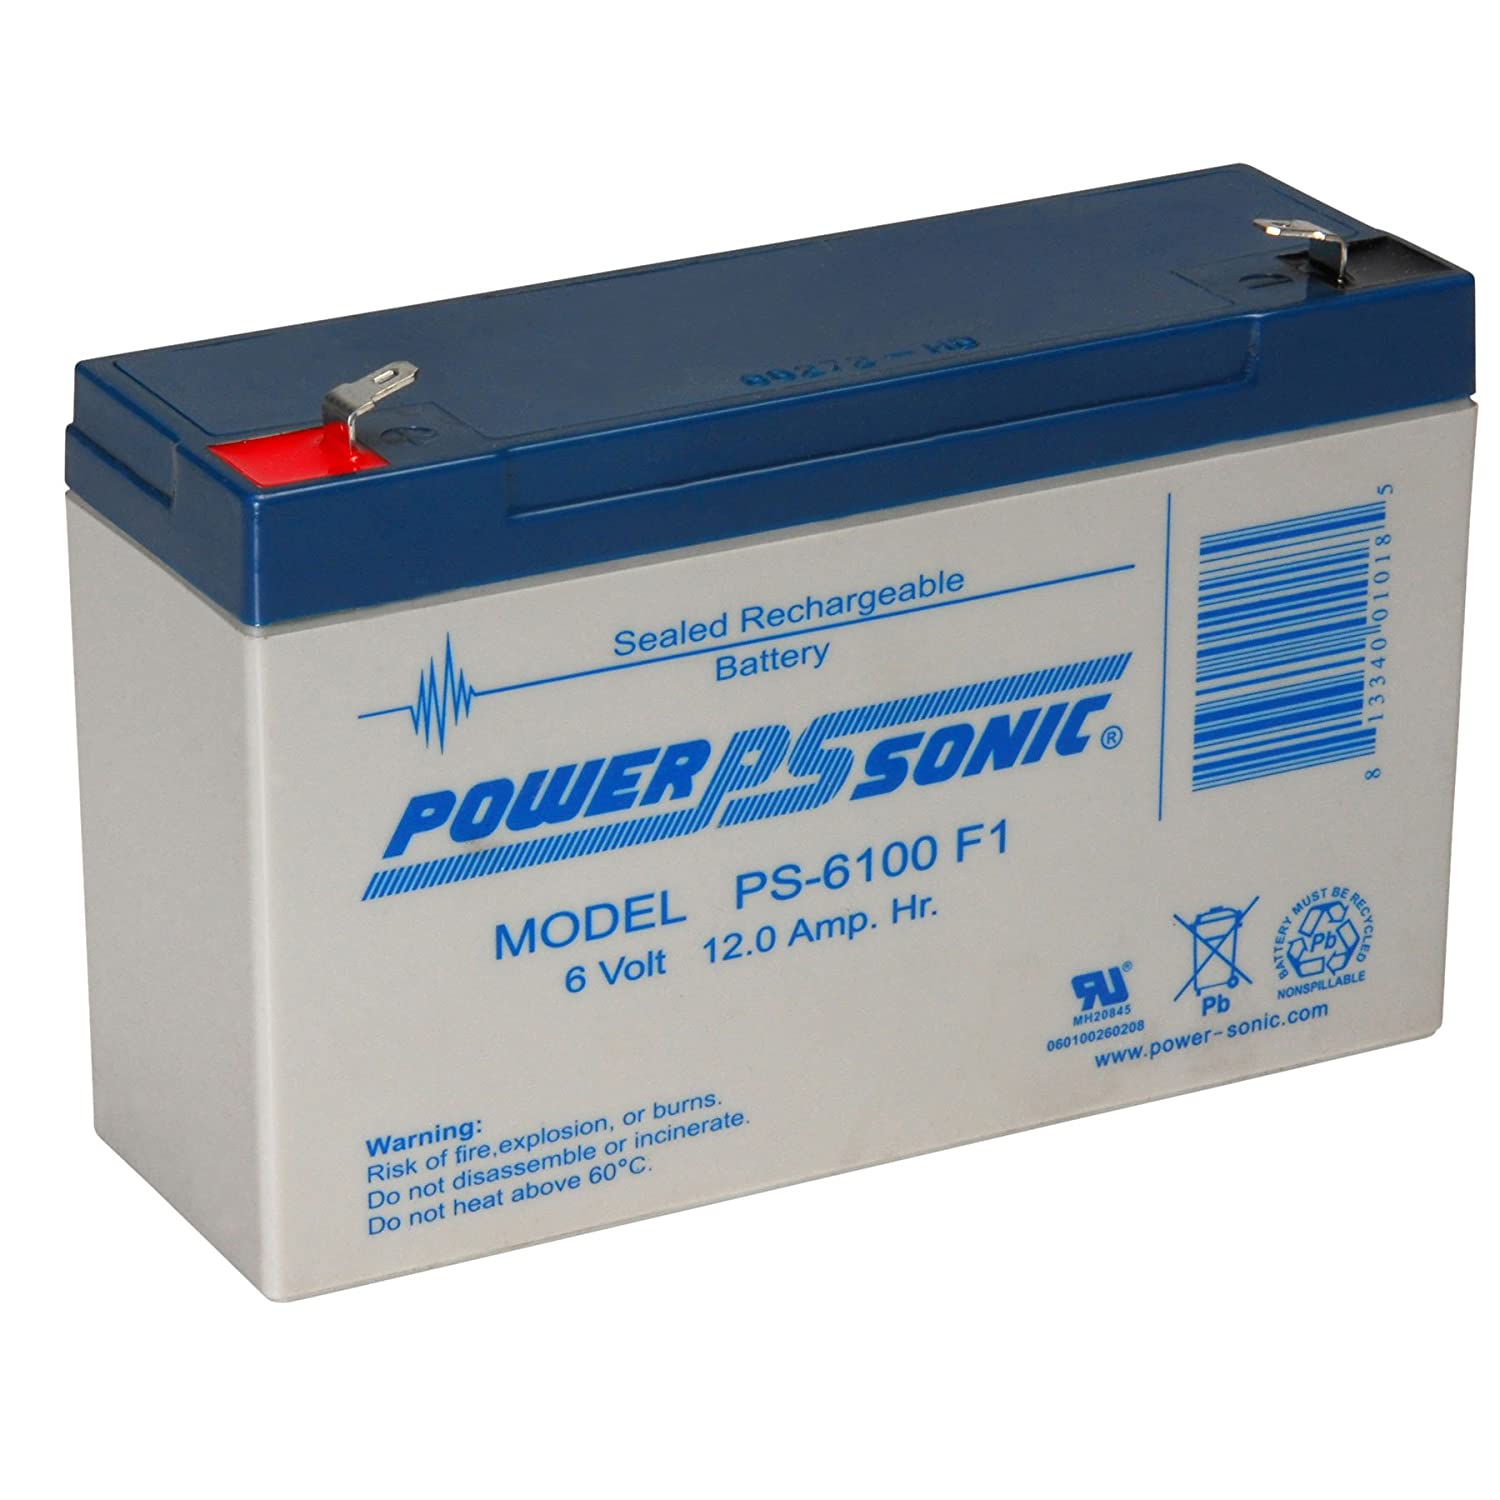 Powersonic PS-6100F1 - 6 Volt/12 Amp Hour Sealed Lead Acid Battery with 0.187 Fast-on Connector POWER-SONIC PS6100 F1